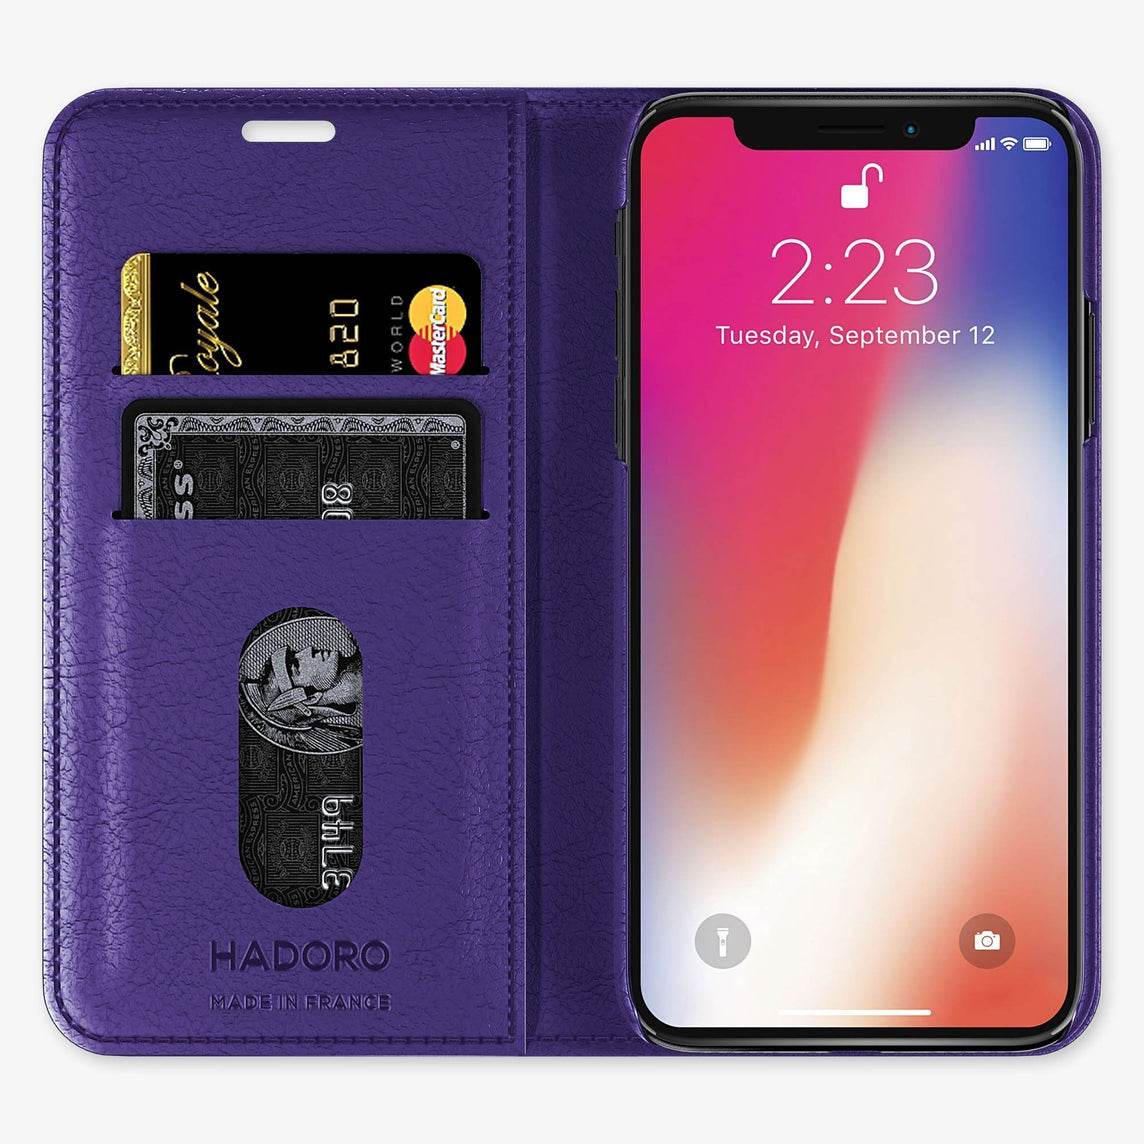 Purple Alligator iPhone Folio Case for iPhone XS Max finishing yellow gold - Hadoro Luxury Cases